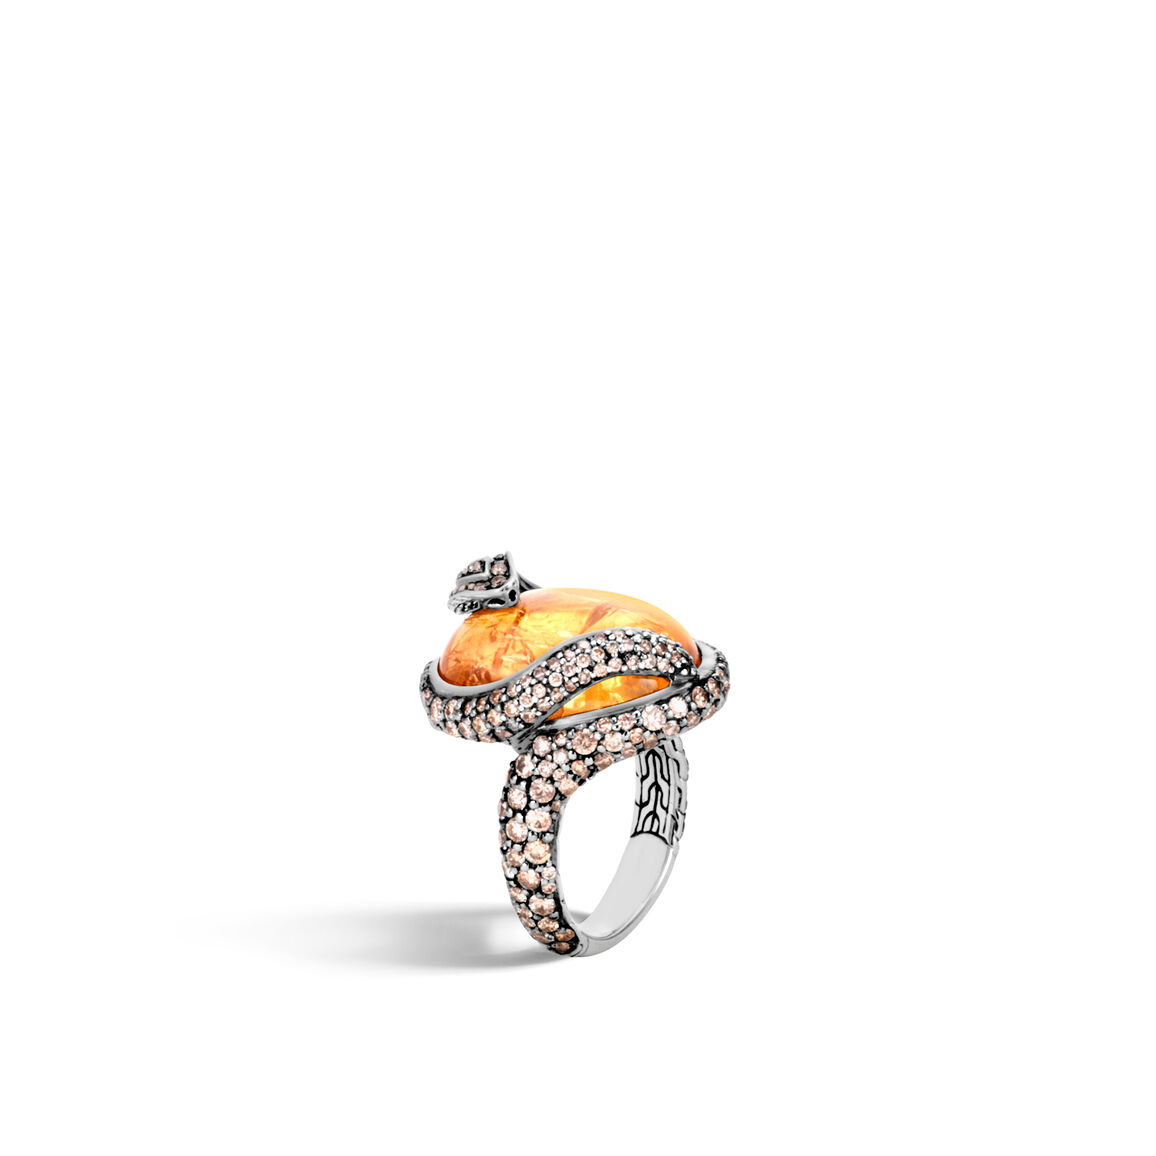 Legends Cobra Ring, Silver, 20x15MM Gems, Champagne Diamonds